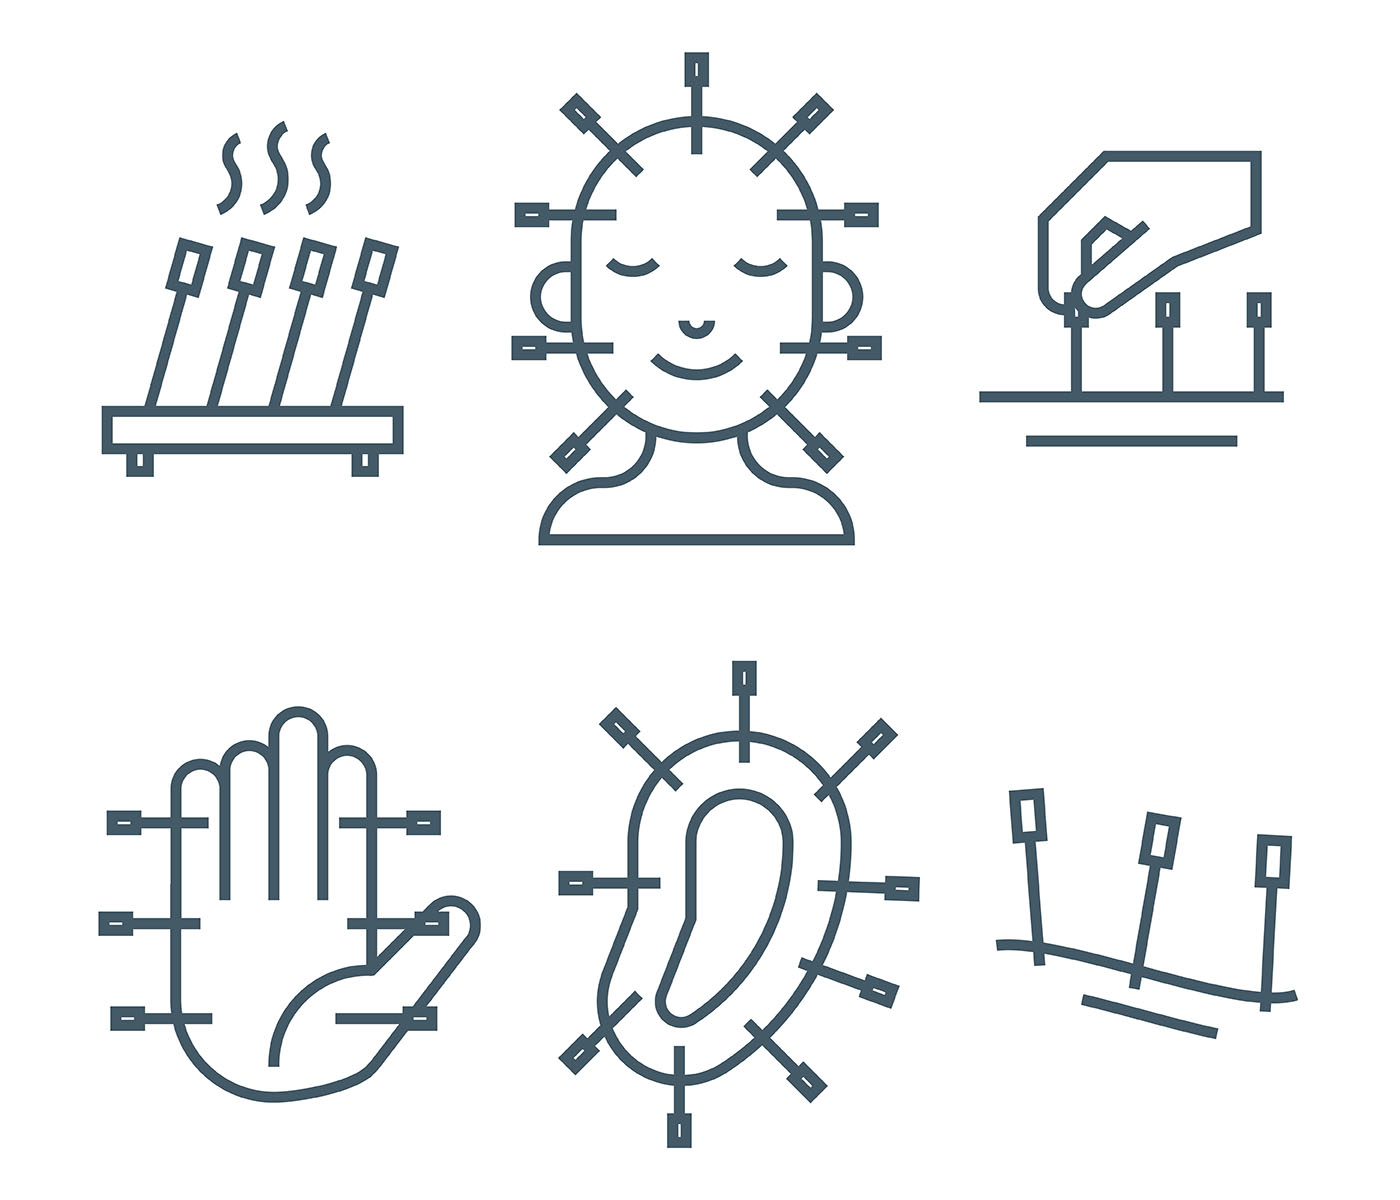 acupuncture vector icons download free vector art stock